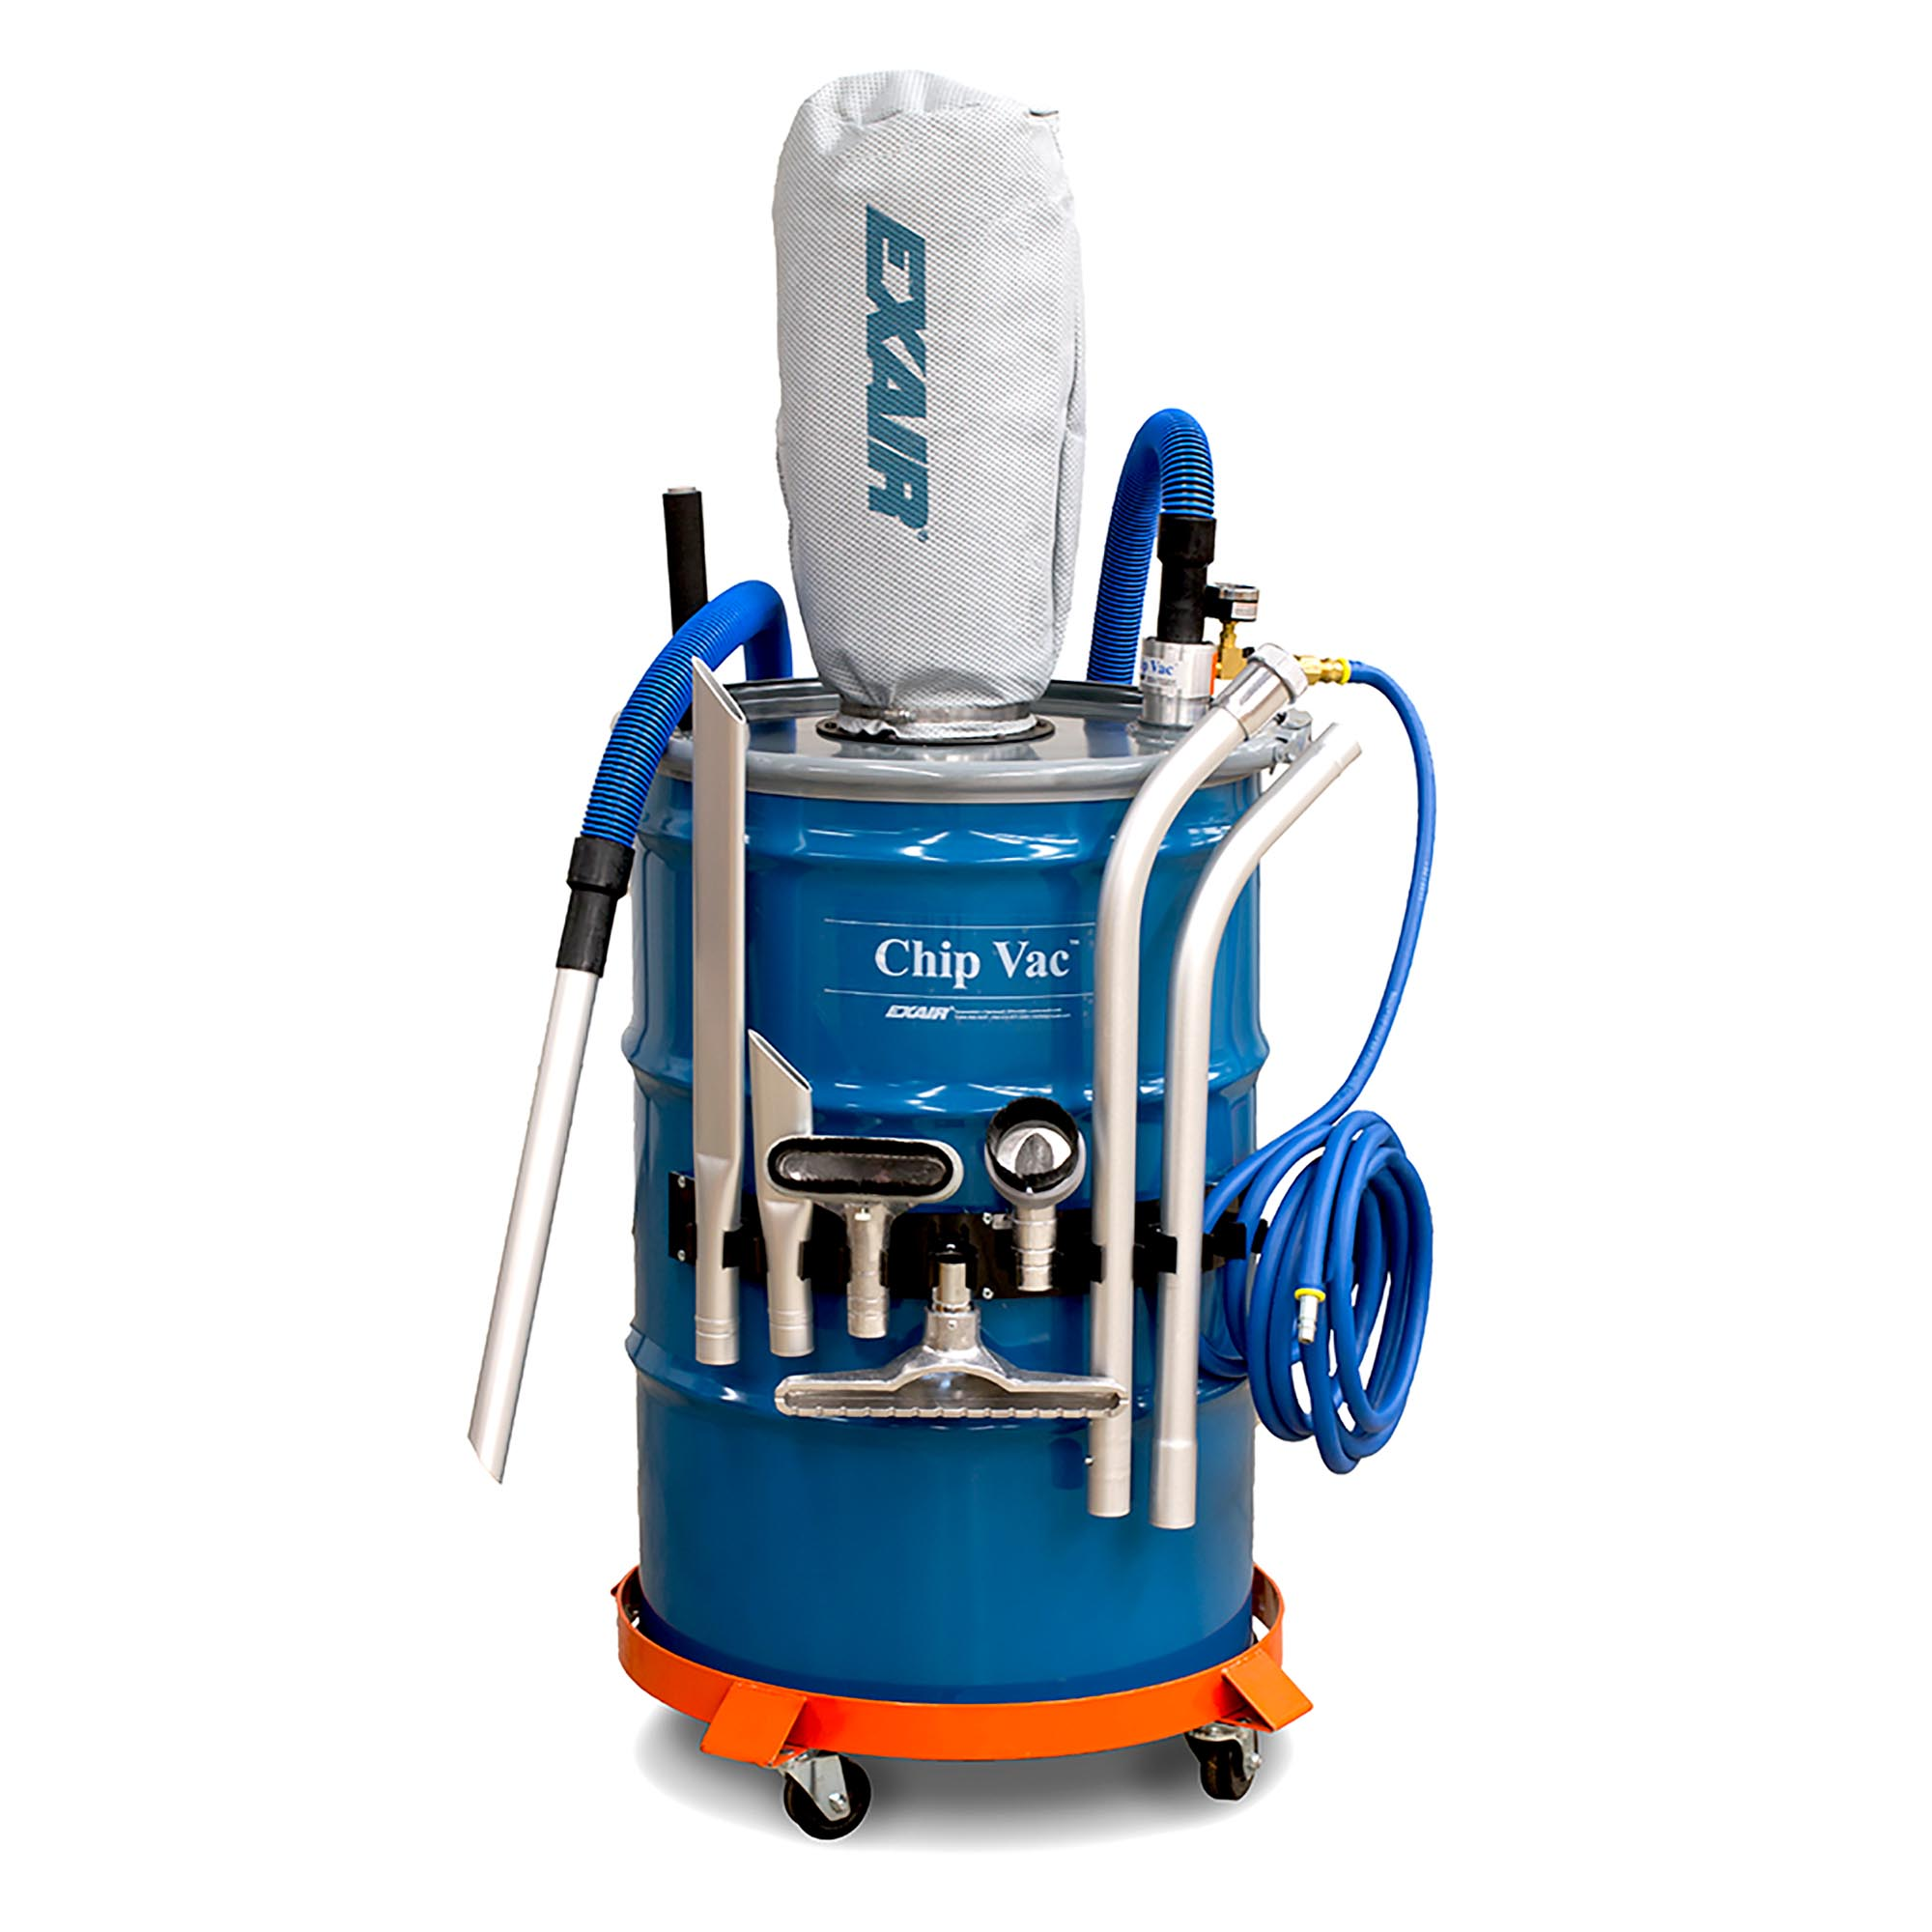 Model 6393 55 Gallon Premium Chip Vac System includes a drum, heavy duty tools, static resistant hose, tool holder and drum dolly.